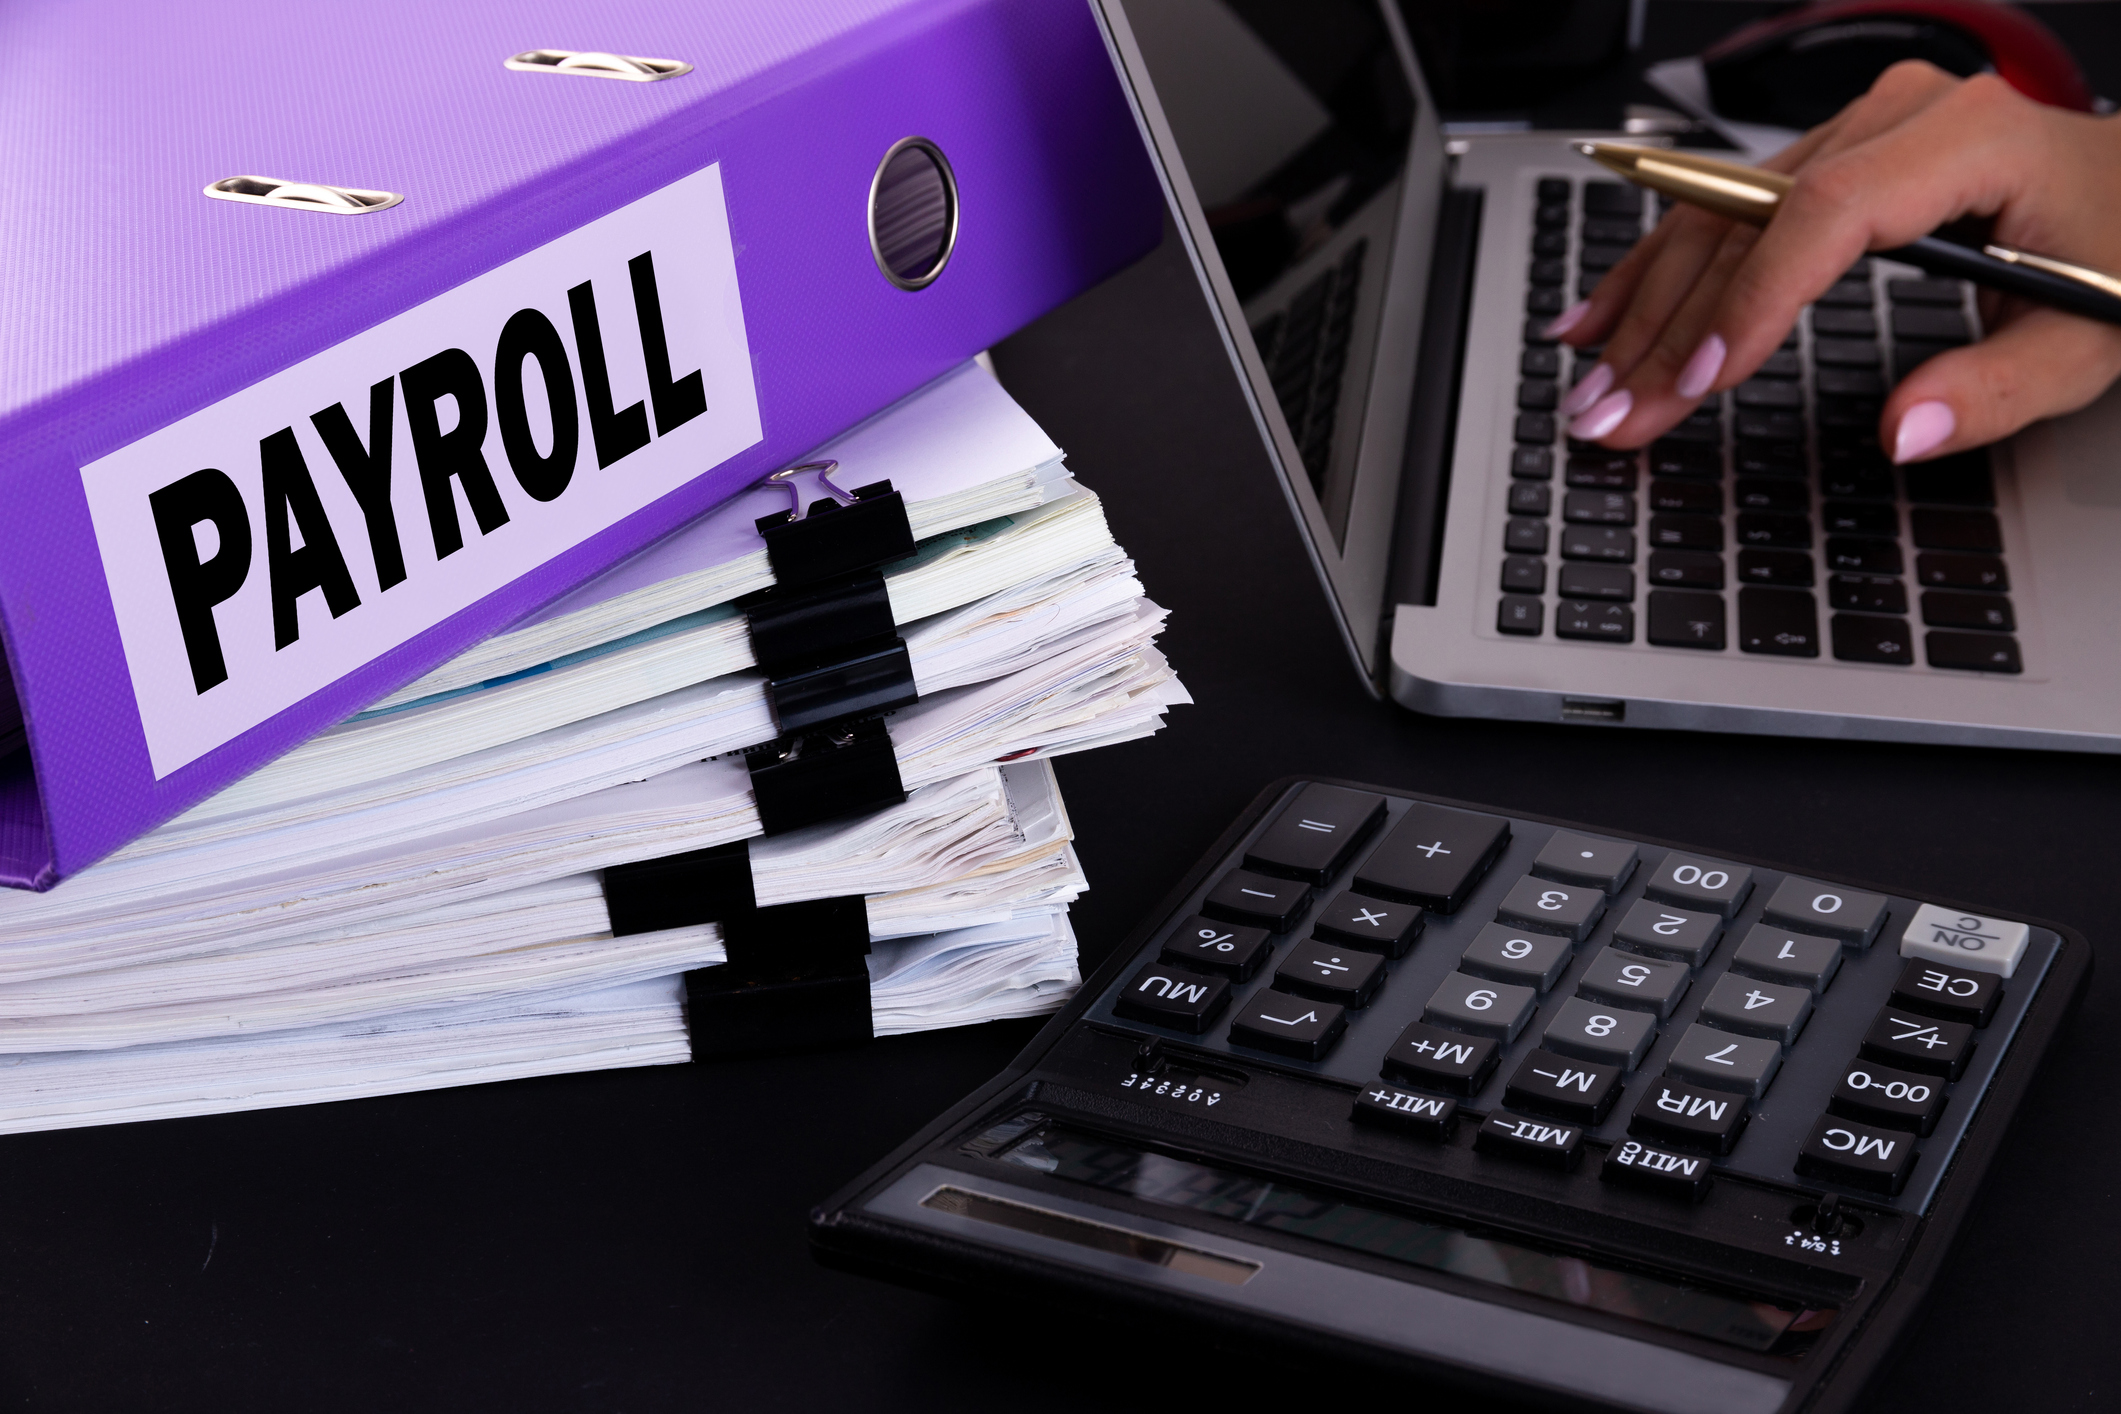 Payroll Taxes - Complete Controller